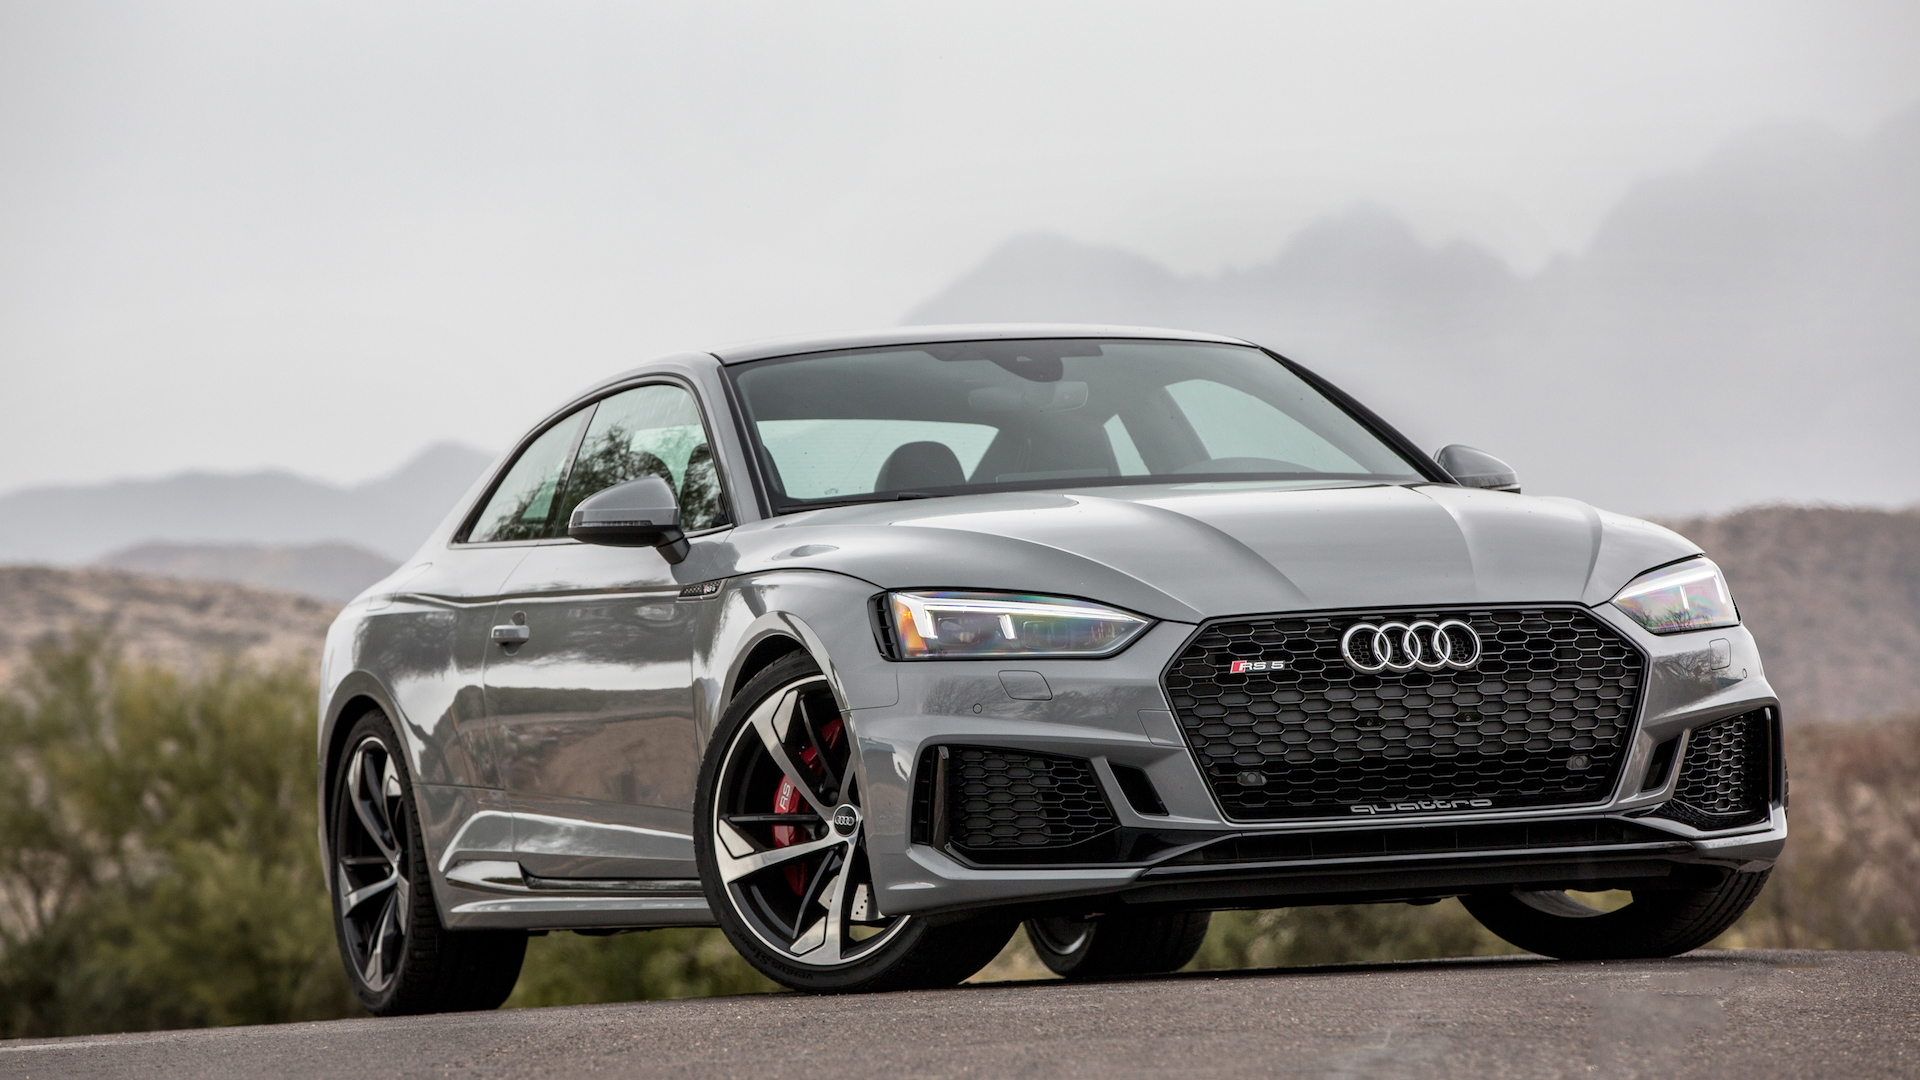 7 Things You Should Know About The 2018 Audi Rs 5